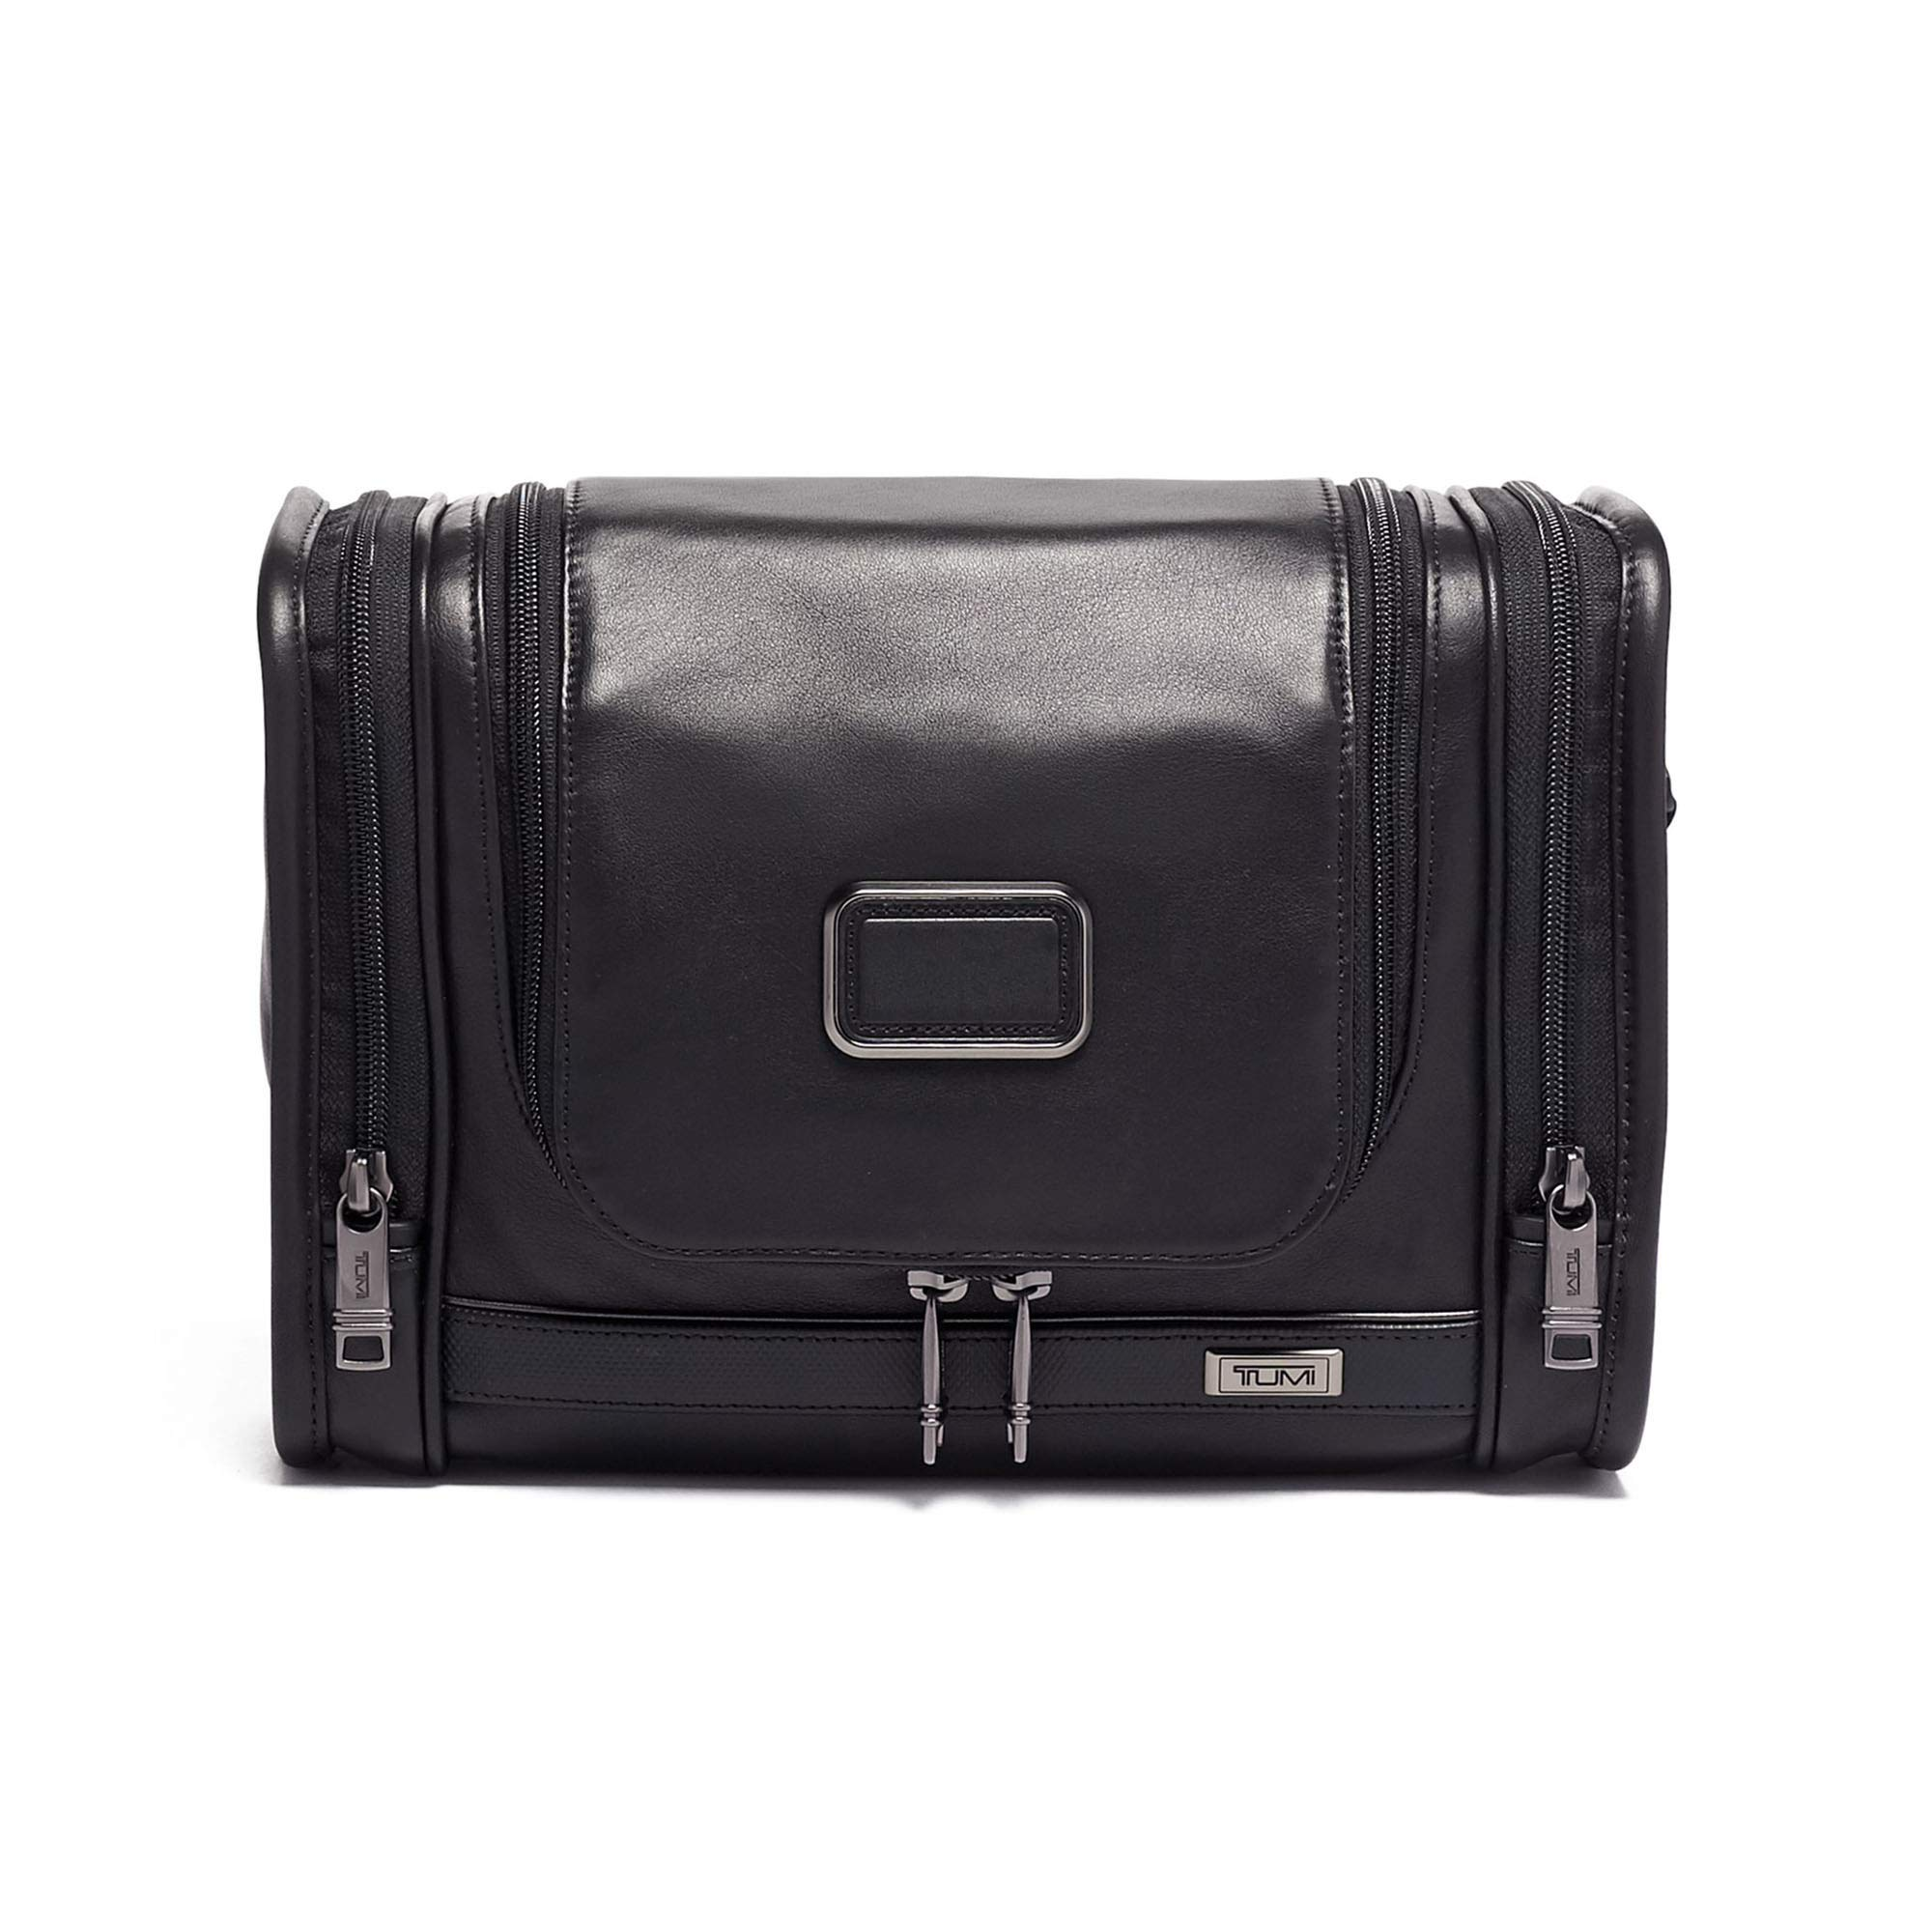 TUMI - Alpha 3 Hanging Leather Travel Kit - Luggage Accessories Toiletry Bag for Men and Women - Black by TUMI